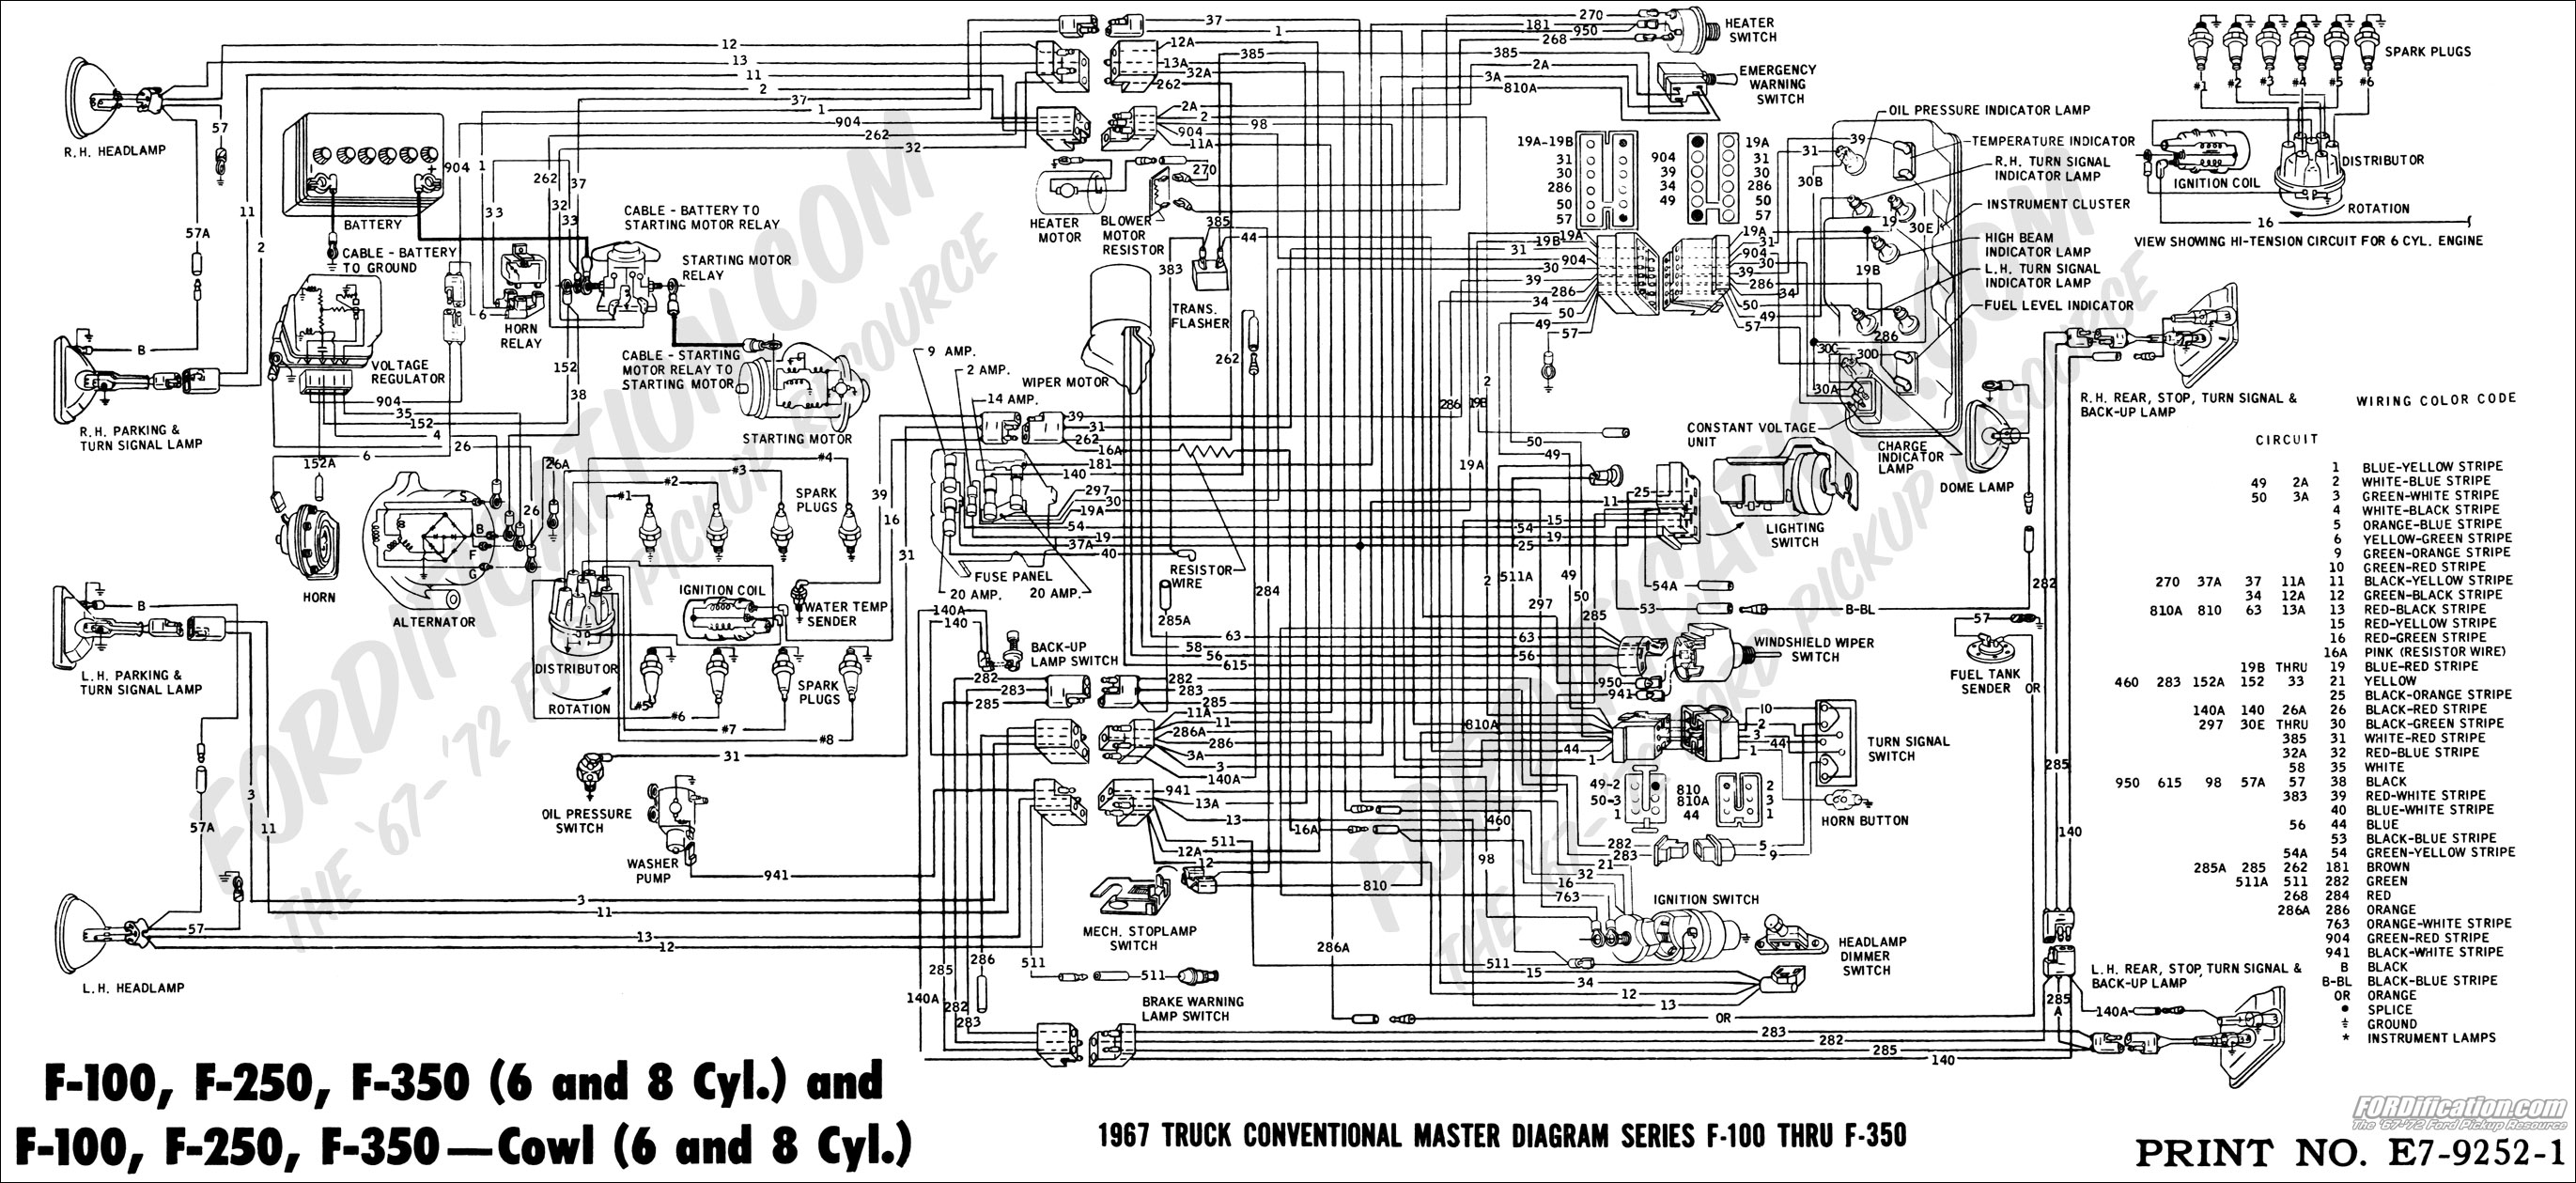 1994 ford bronco ignition wiring diagram 1994 ford bronco 1994 ford bronco ignition wiring diagram 2006 ford f150 ignition wiring diagram wire diagram